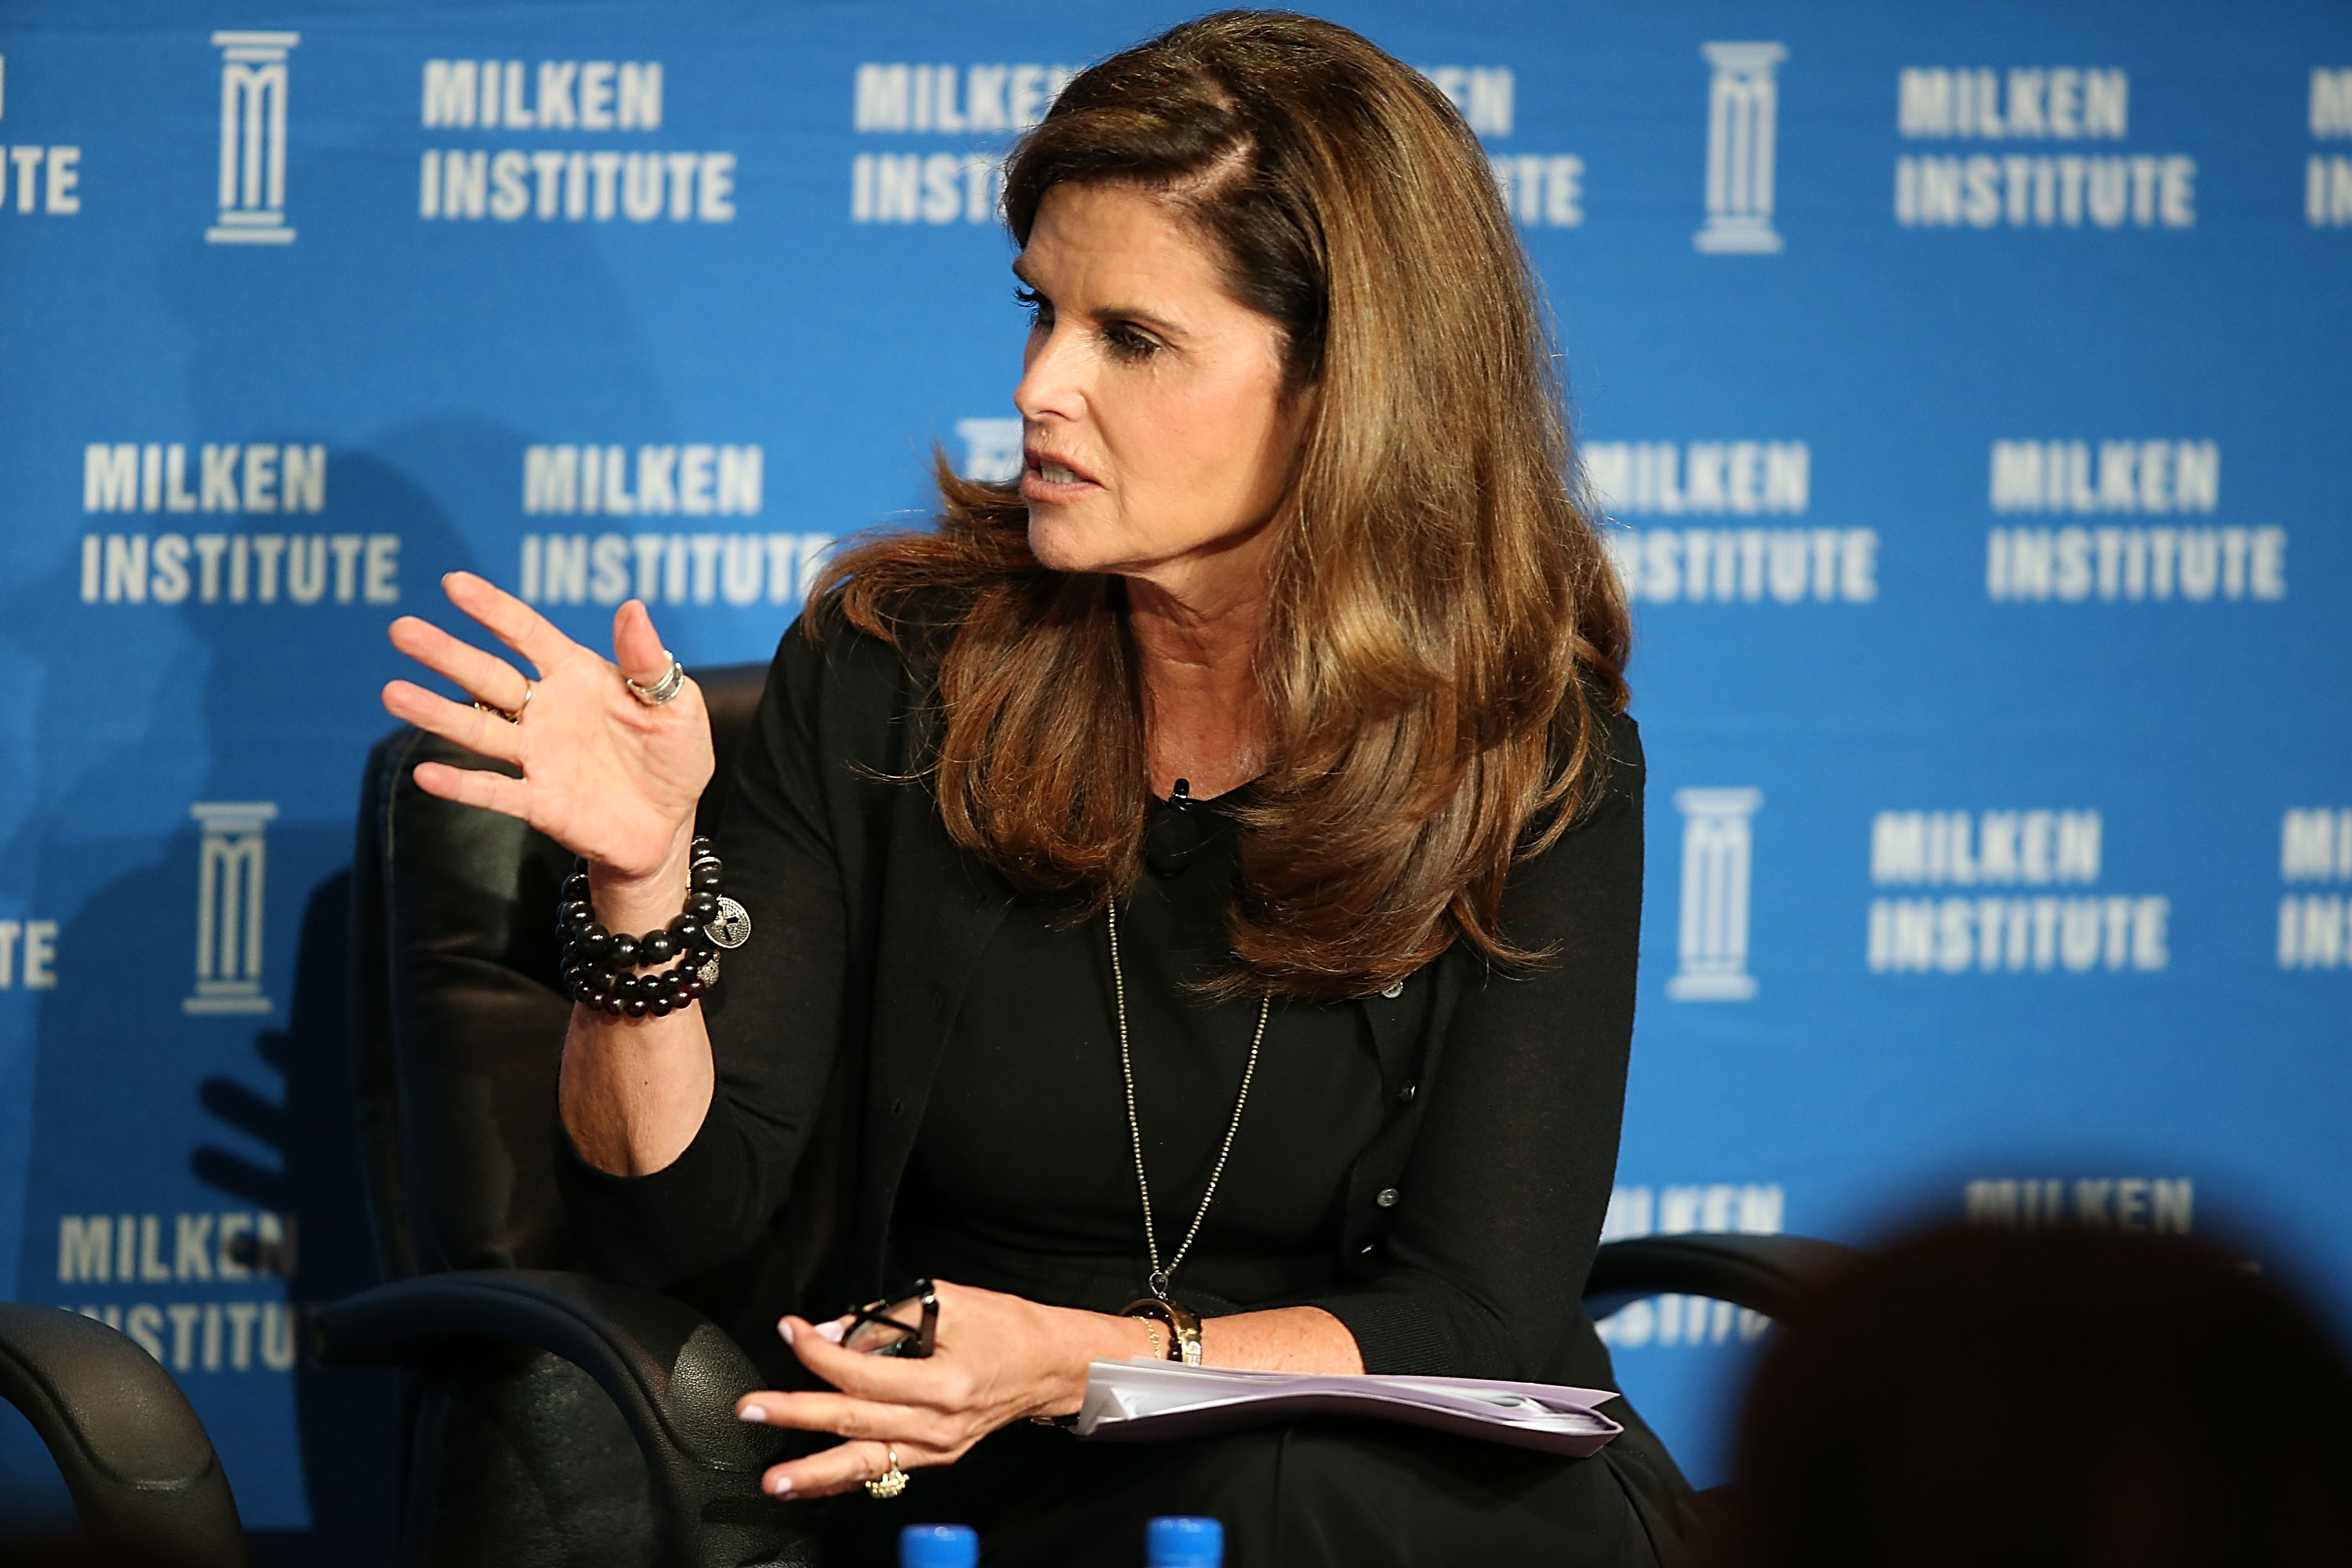 Maria Shriver speaks onstage at the 2016 Milken Institute Global Conference on May 04, 2016 in Beverly Hills, California.